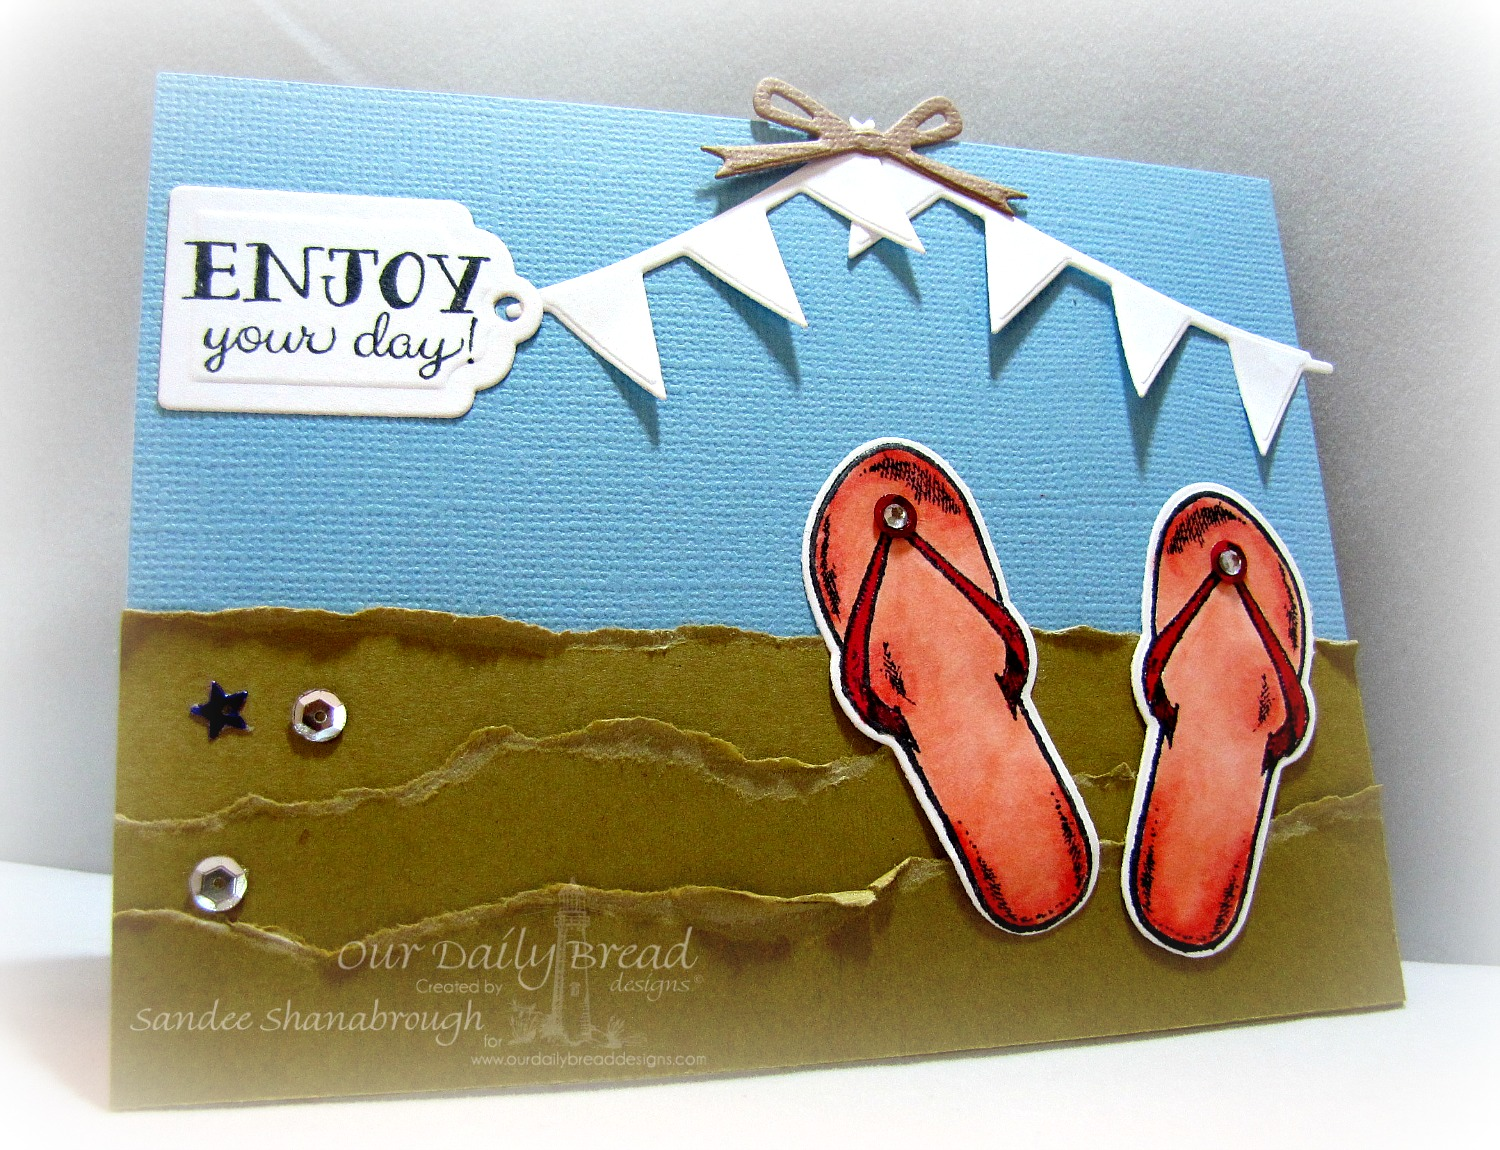 Stamps - Our Daily Bread Designs Flip flop Fun, ODBD Custom Flip Flop Dies, ODBD Custom Pennant Row Die, ODBD Custom Circle Ornament Dies, ODBD Custom Recipe Card and Tags Dies